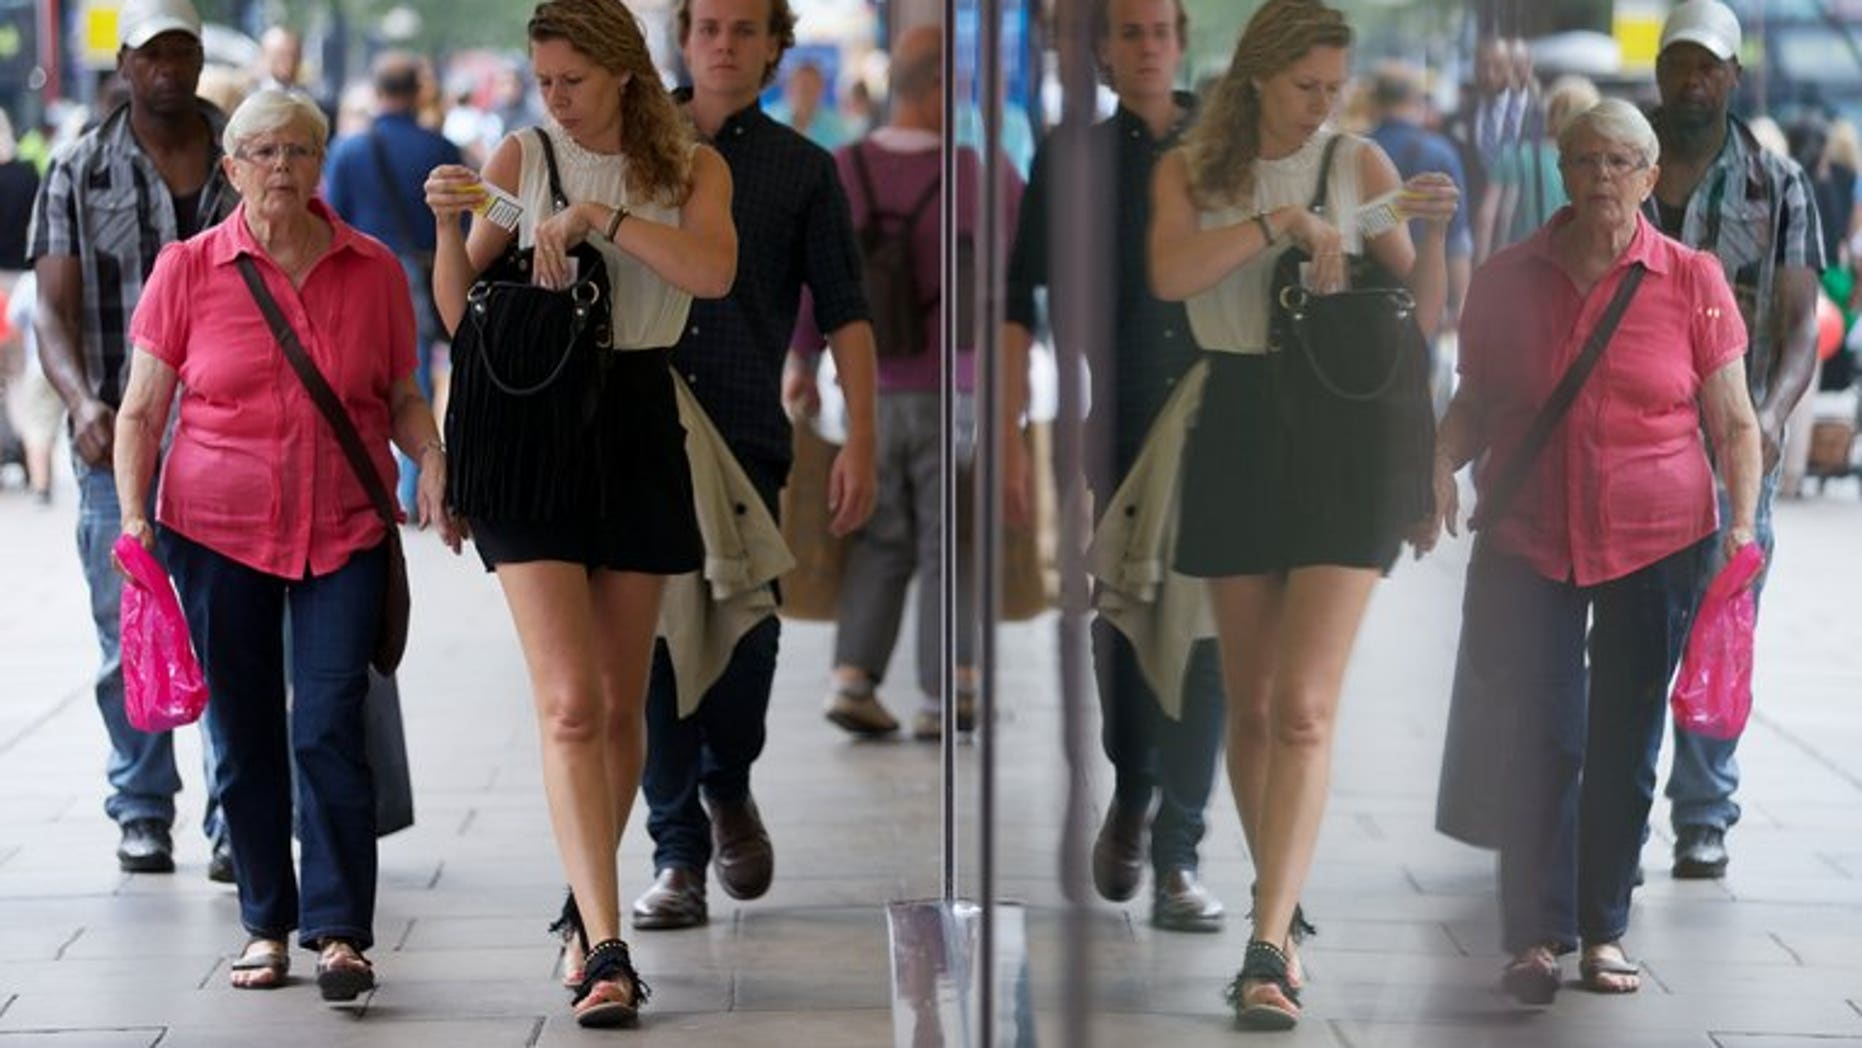 Shoppers are reflected in windows as they walk past a shop on Oxford Street in London on August 7, 2013. British retail sales fell unexpectedly in August after unusually hot weather in July had fuelled spending on food, drinks and summer clothing, official data has shown.